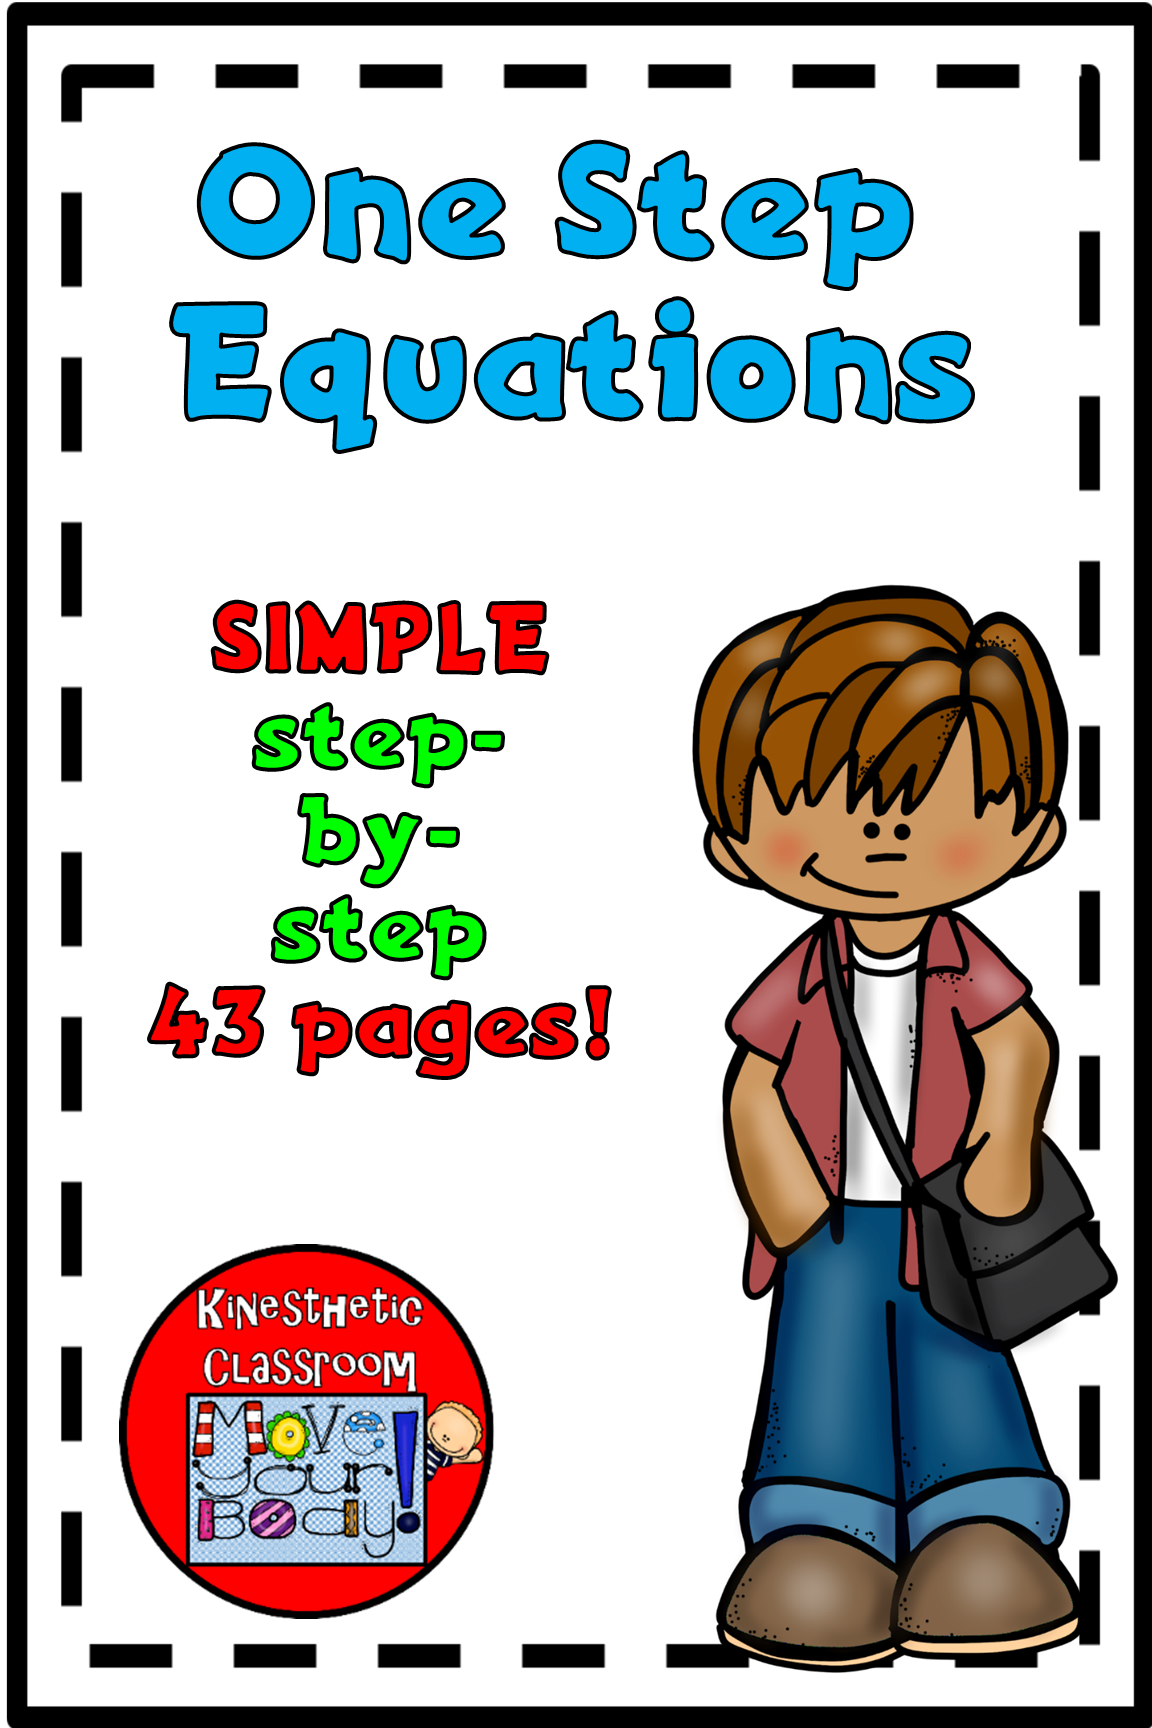 One Step Equation Worksheets Simple Step By Step Resource